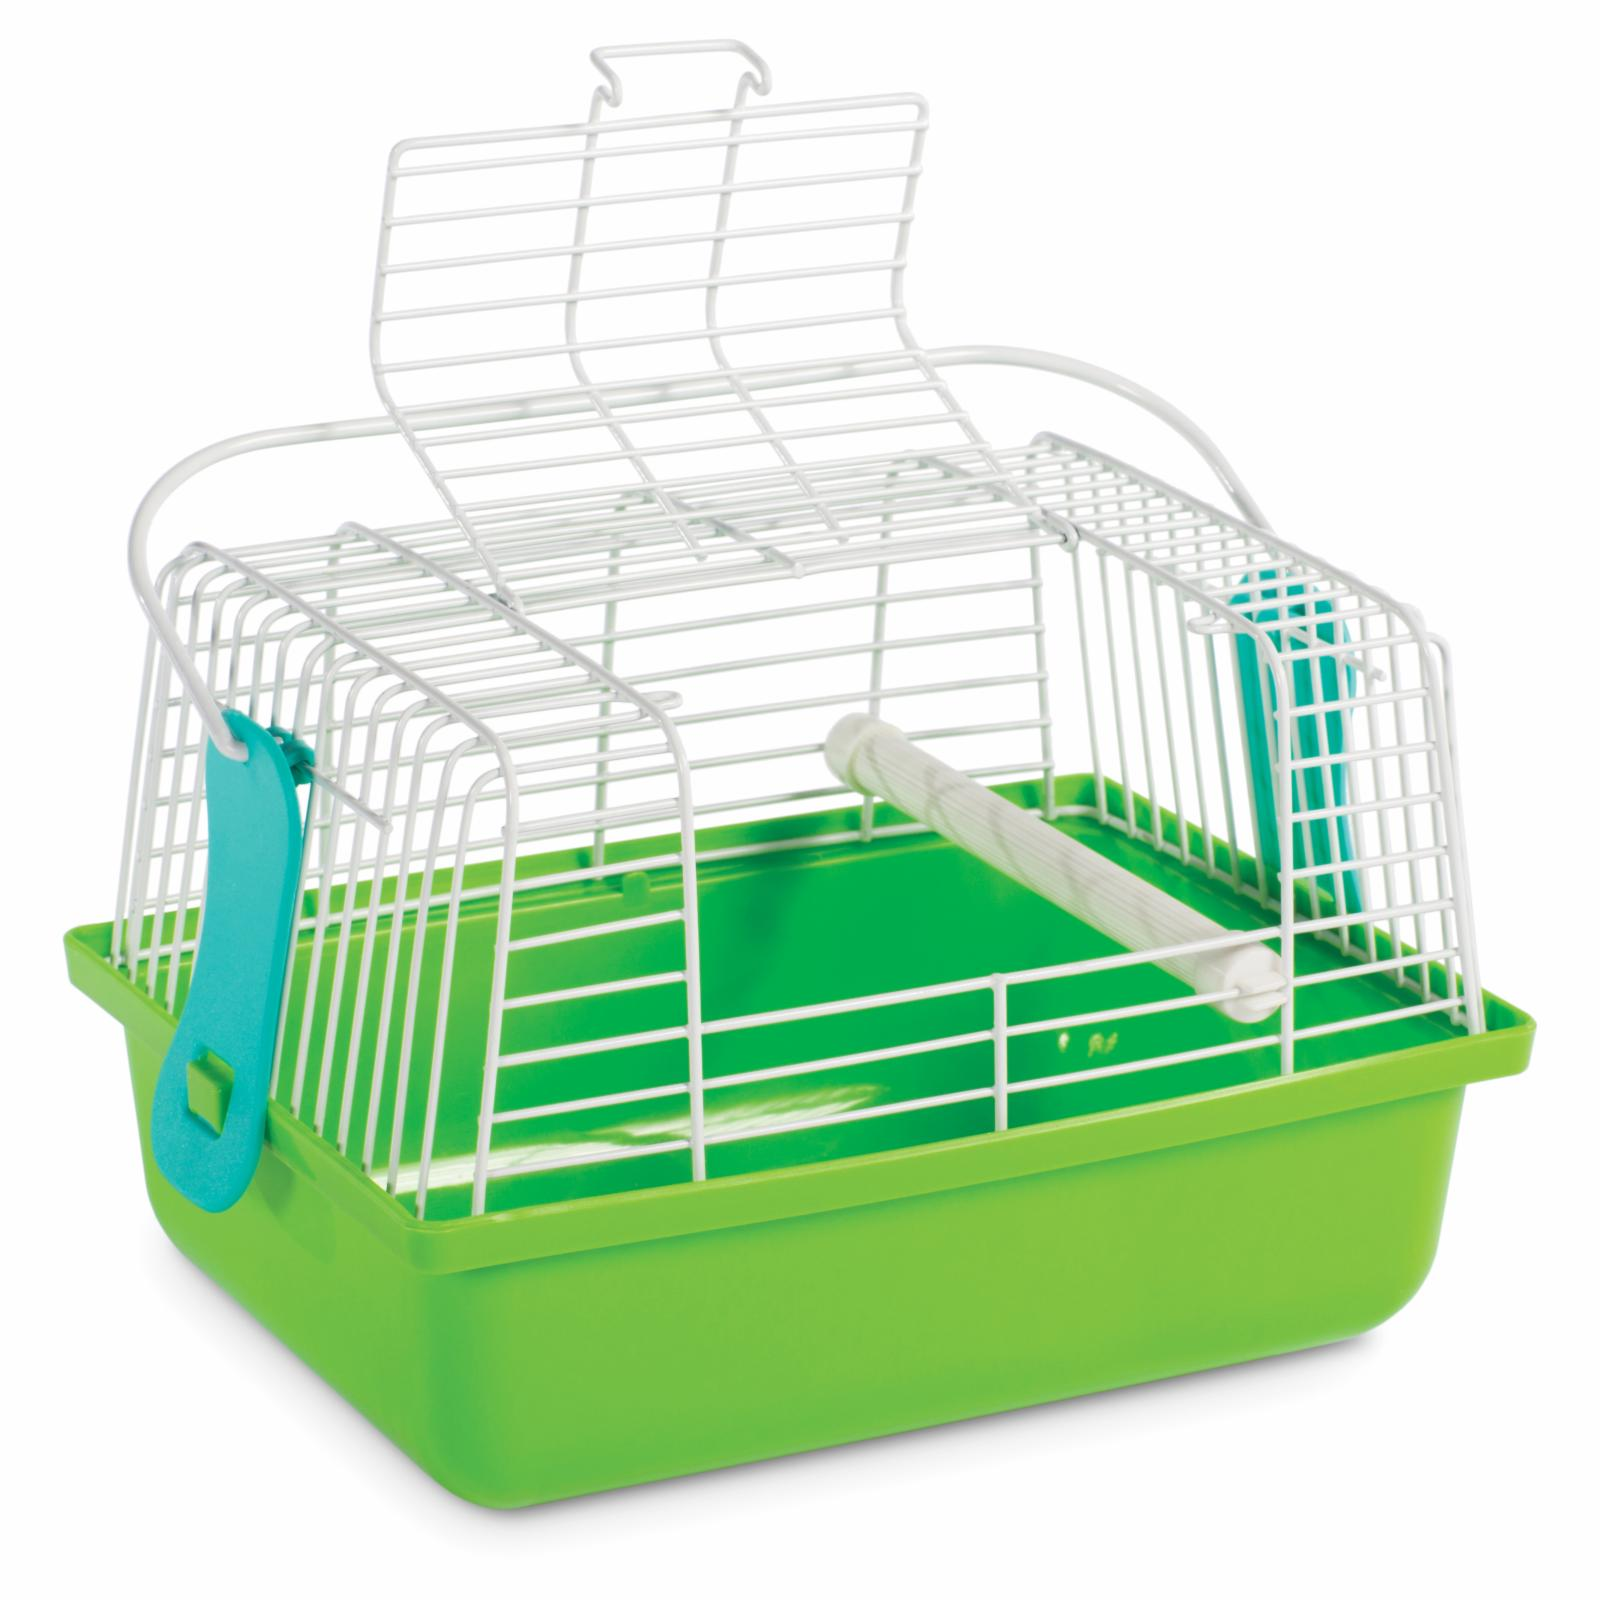 Prevue Birds and Small Animals Travel Cage SP1304 Color: Green